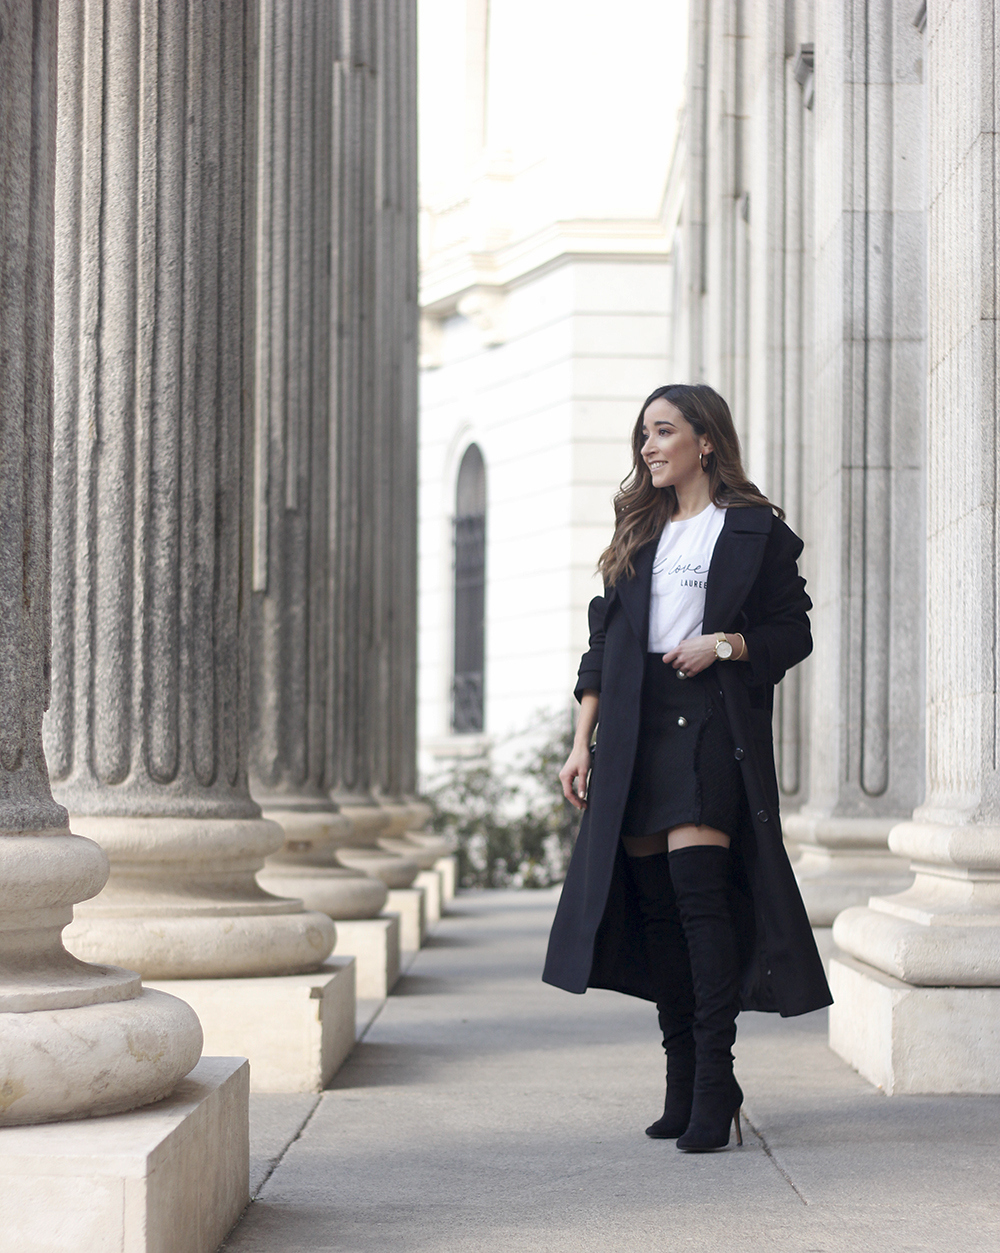 tweed skirt over the knee boots black trench coat street style outfit 20192